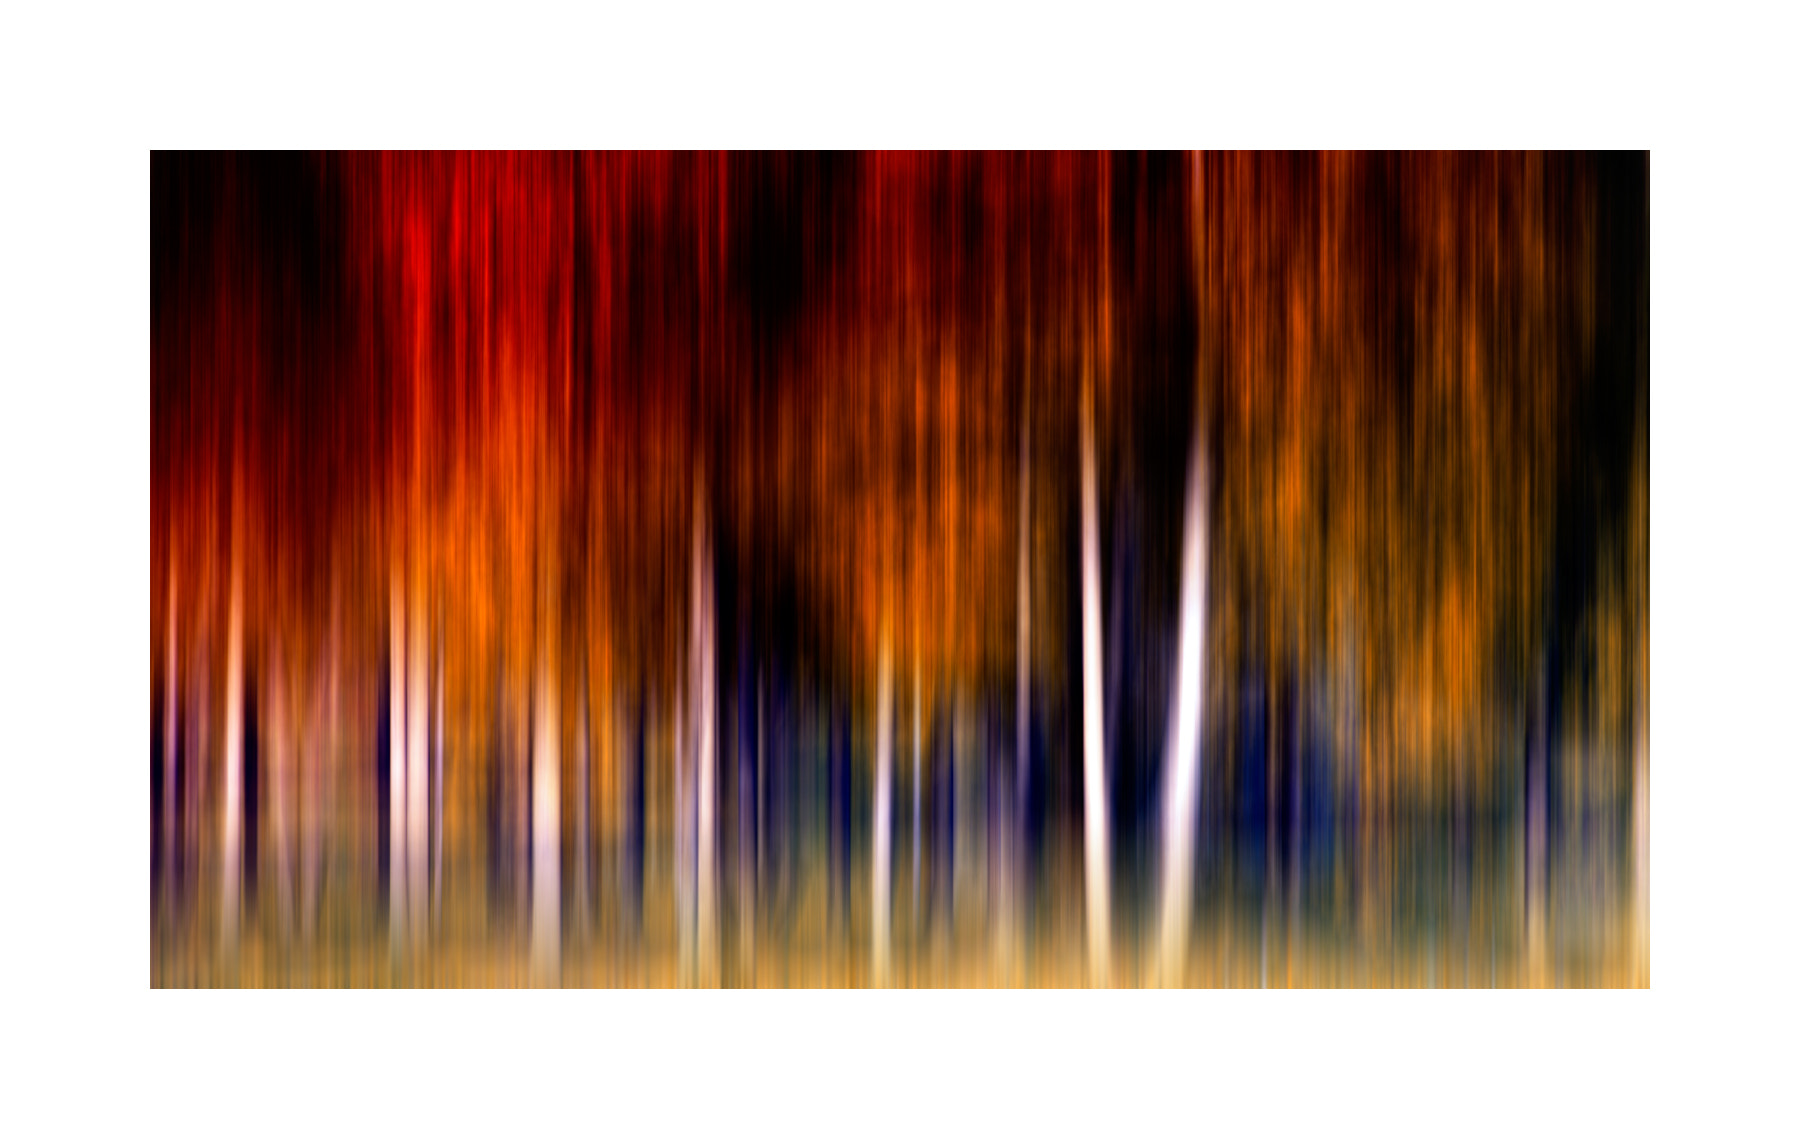 Photograph colors in the forest by Marek Czaja on 500px